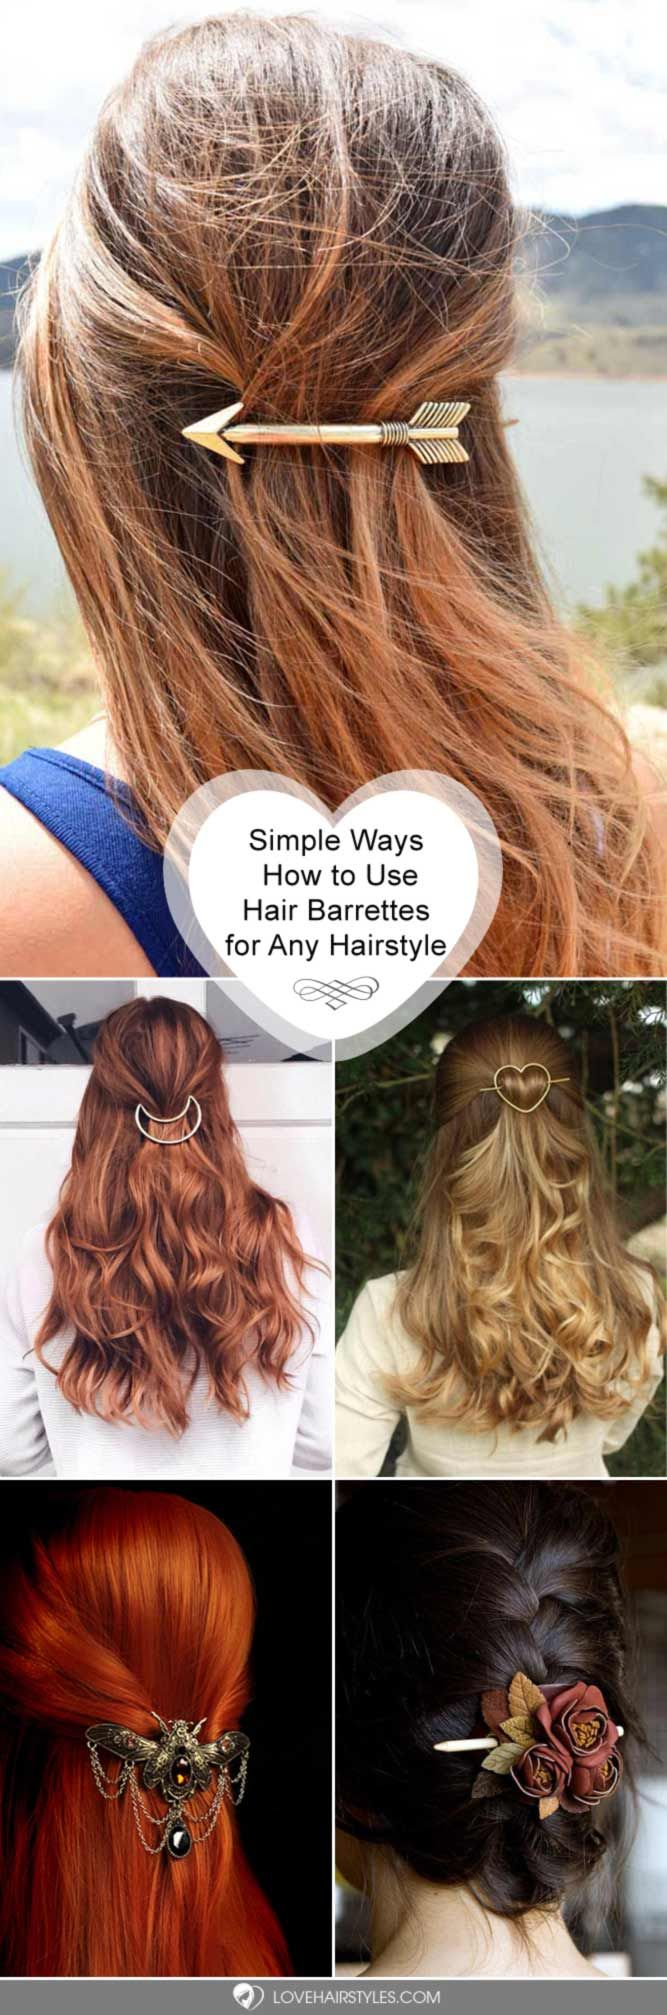 hair barrettes ideas to wear with any hairstyles vogue